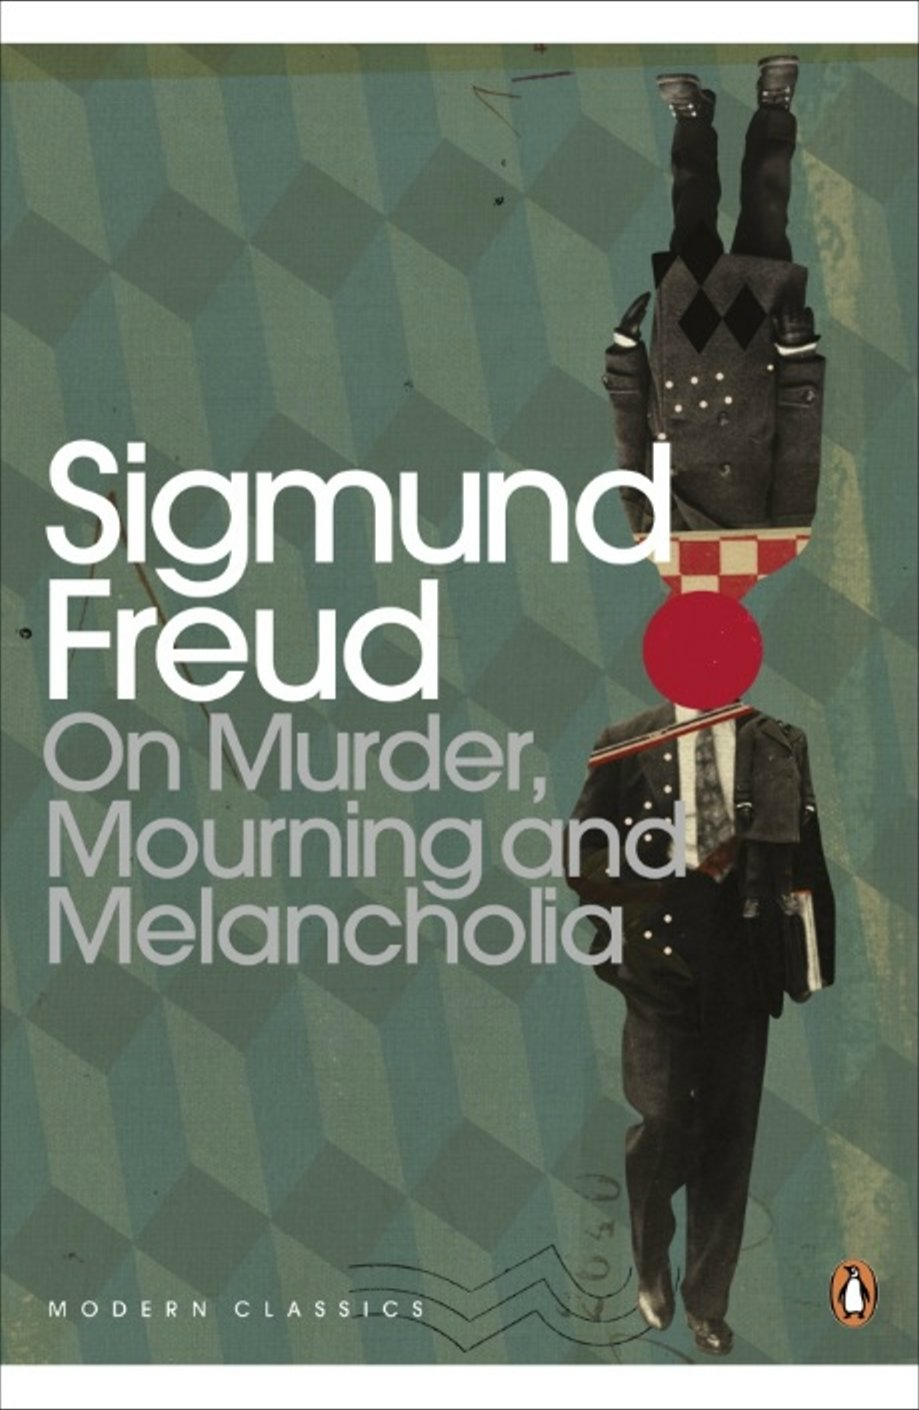 On Murder, Mourning and Melancholia